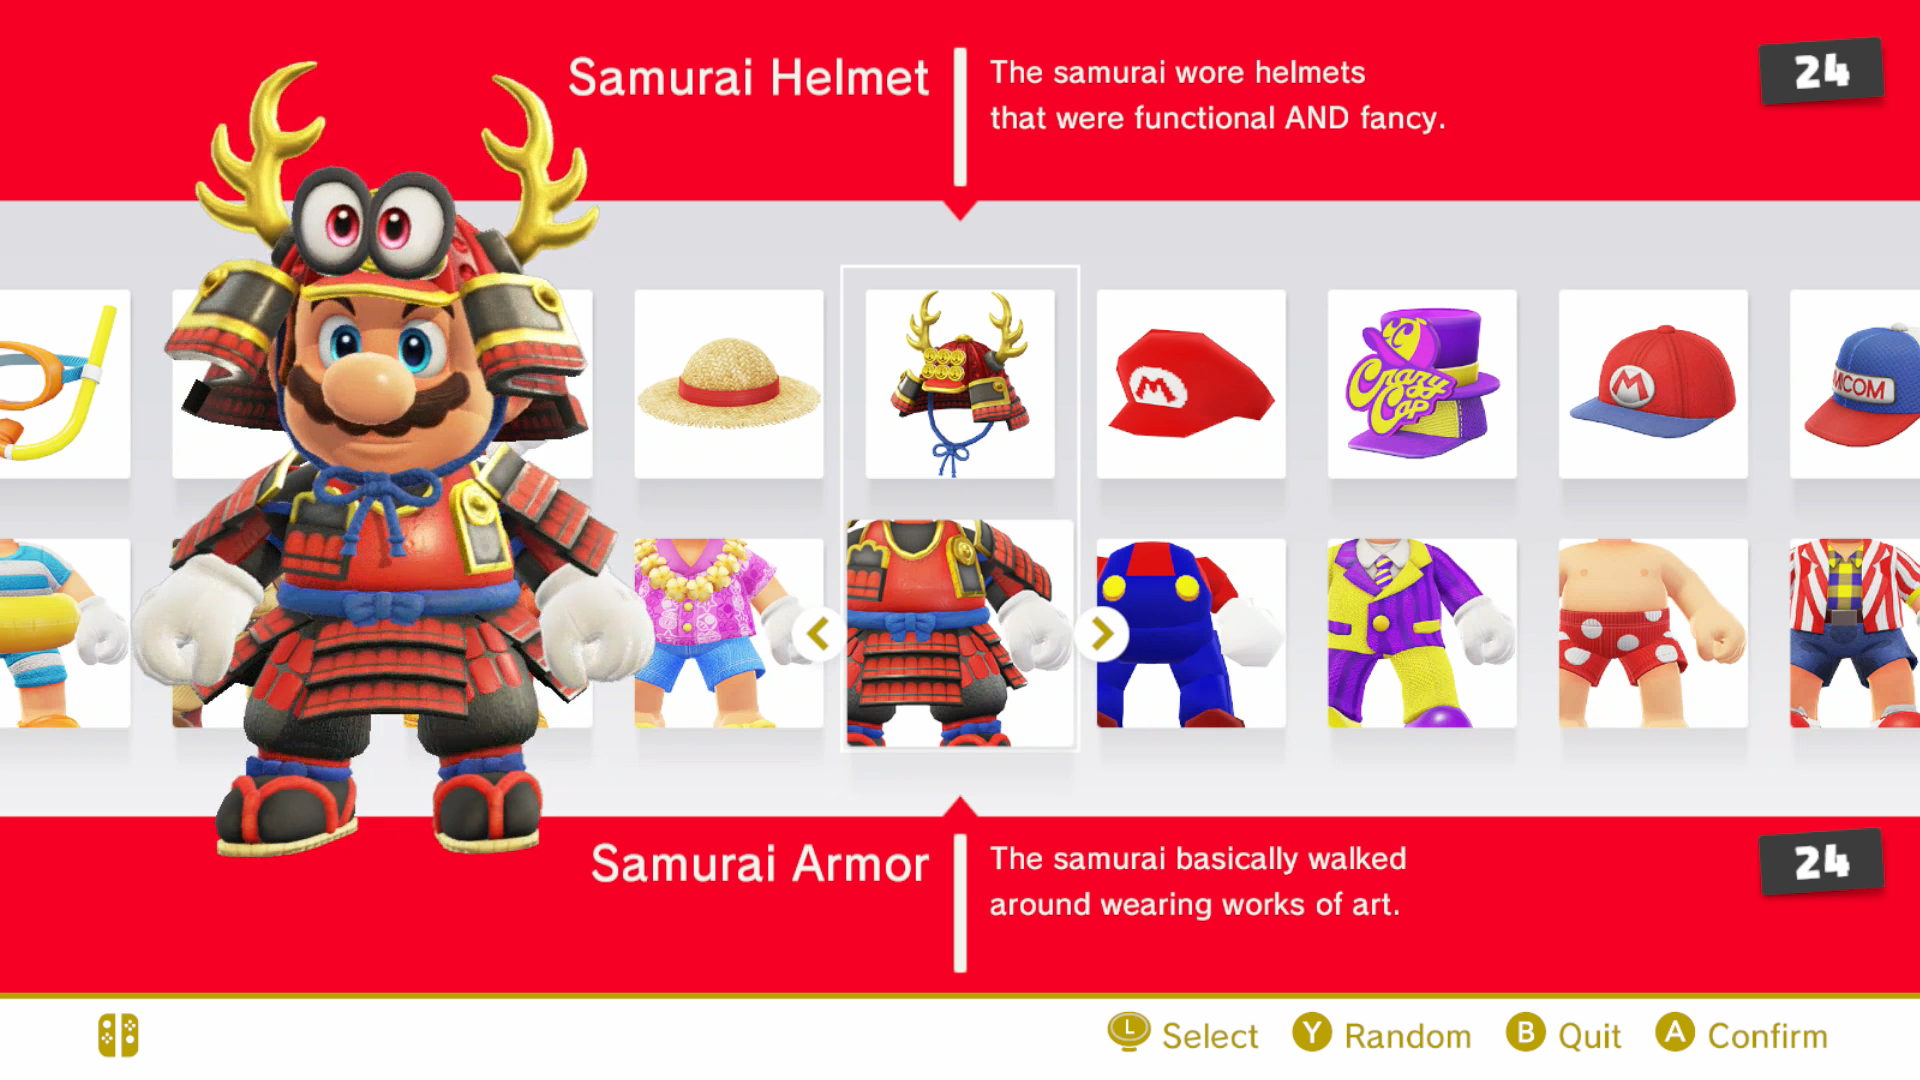 Samurai Helmet 24 The samurai wore helmets that were functional AND fancy. o O OM  sc 1 st  Know Your Meme & samurai costume | Super Mario Odyssey | Know Your Meme